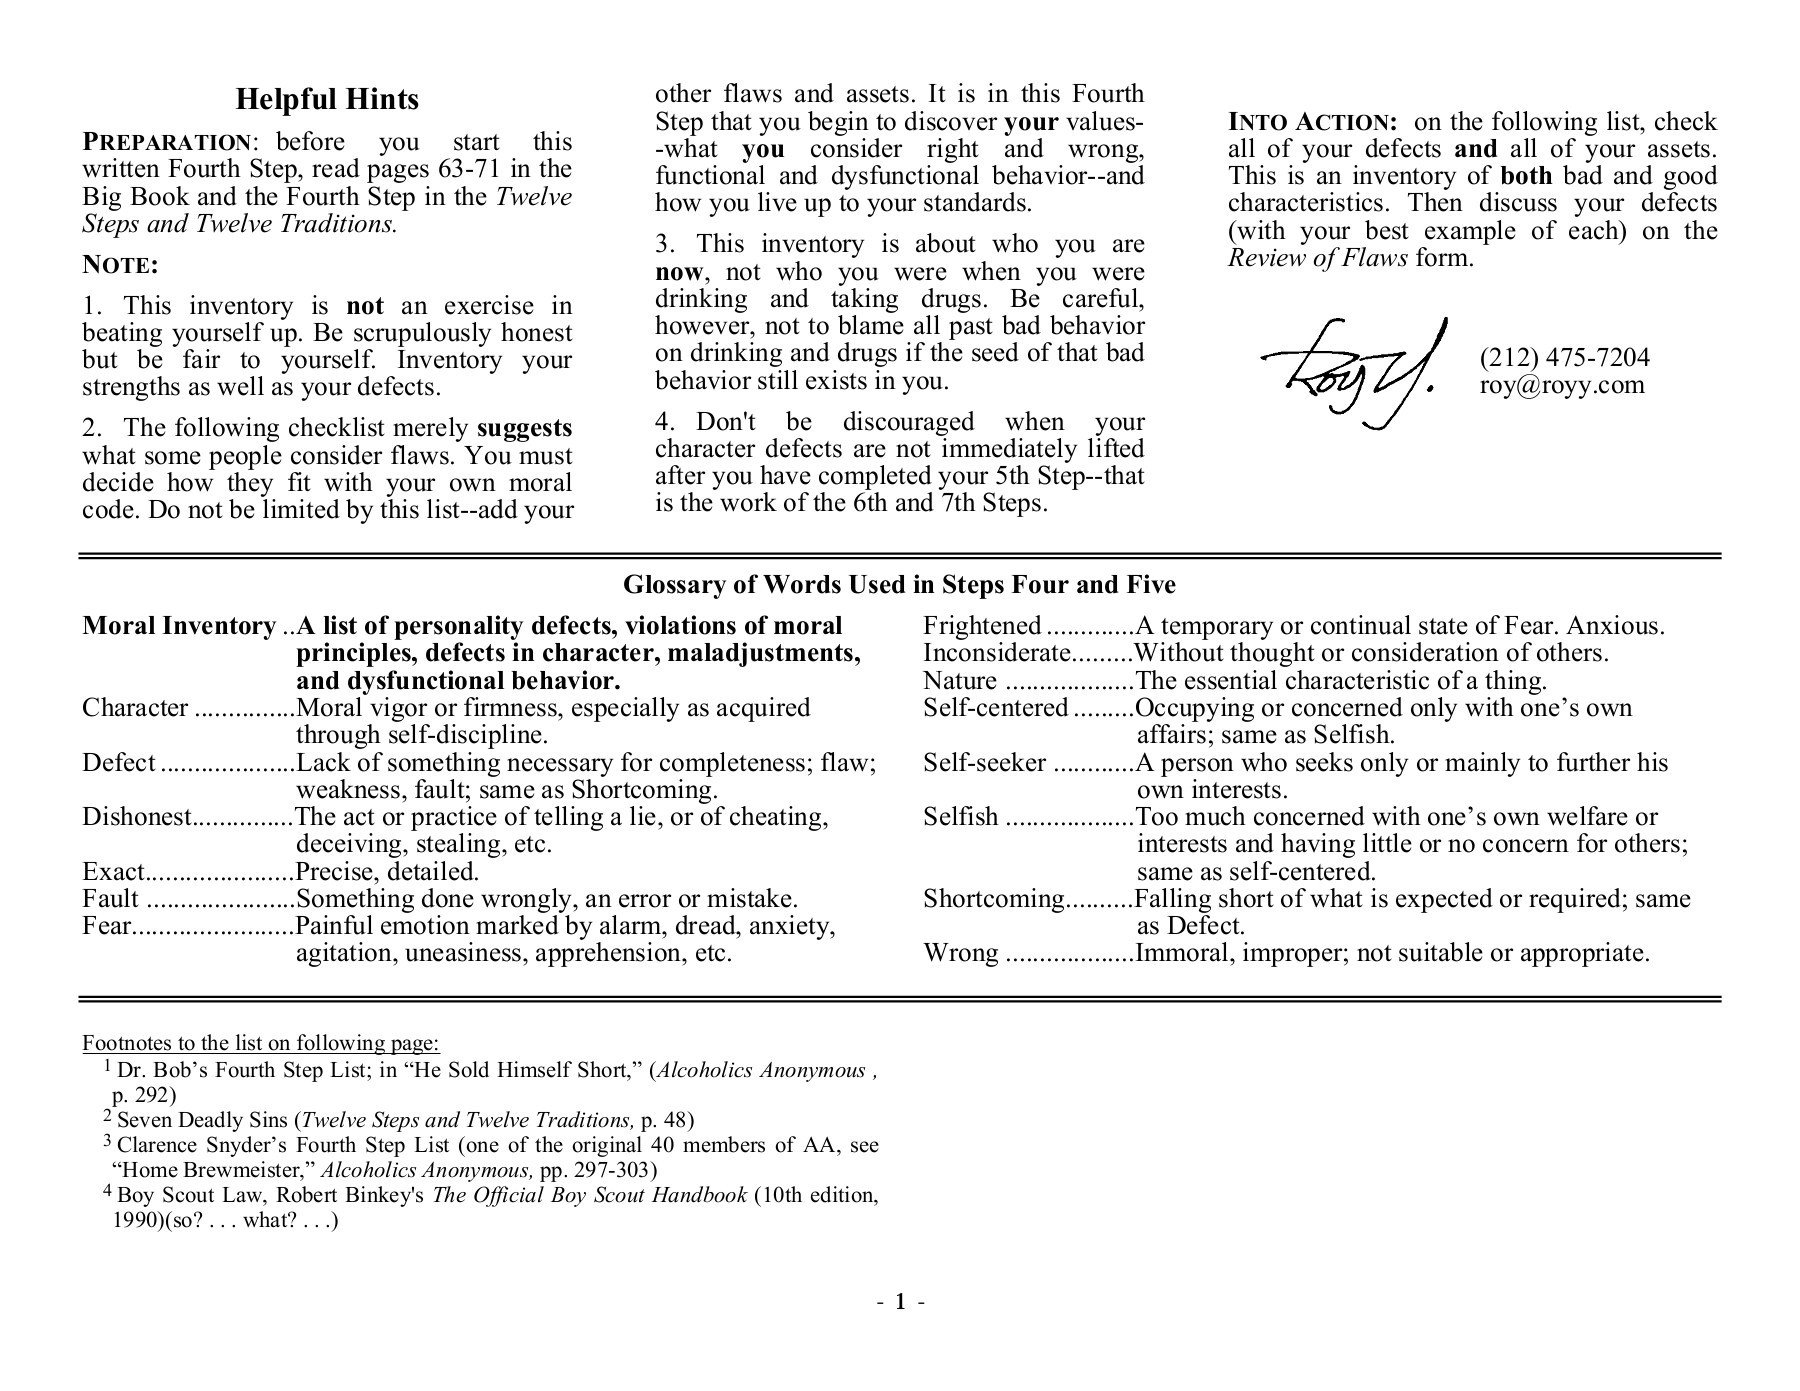 Fourth Step Invento Ry  12  Steps  Recovery Pages 1  15  Text Or Aa Step 9 Worksheet